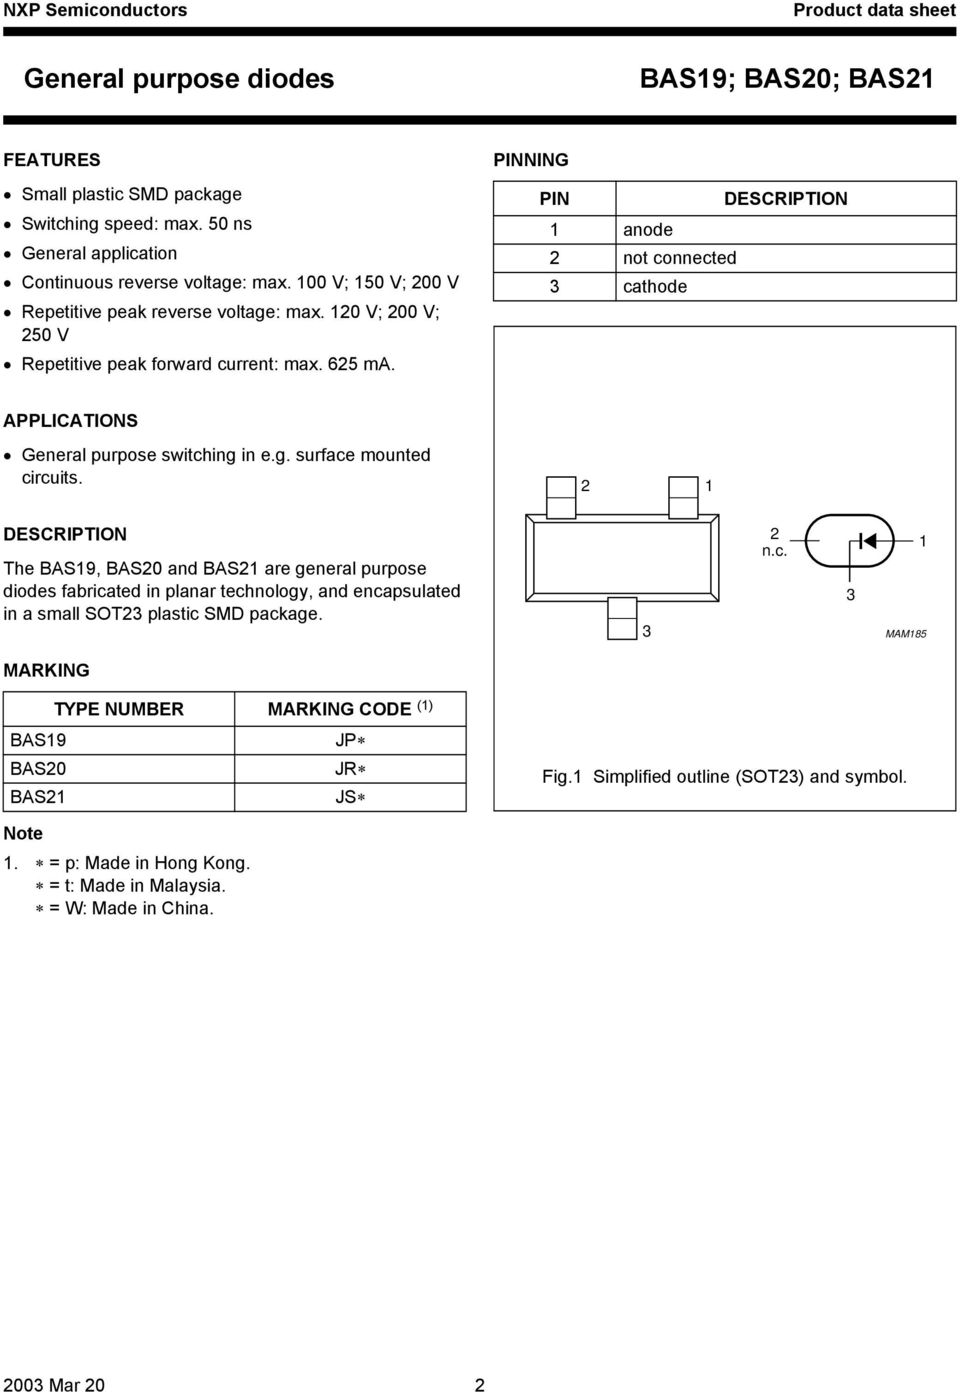 DESCRIPTION The BAS19, BAS20 and BAS21 are general purpose diodes fabricated in planar technology, and encapsulated in a small SOT23 plastic SMD package. handbook, halfpage 2 1 2 n.c. 3 MAM185 3 1 MARKING TYPE NUMBER MARKING CODE (1) BAS19 JP BAS20 JR BAS21 JS Fig.